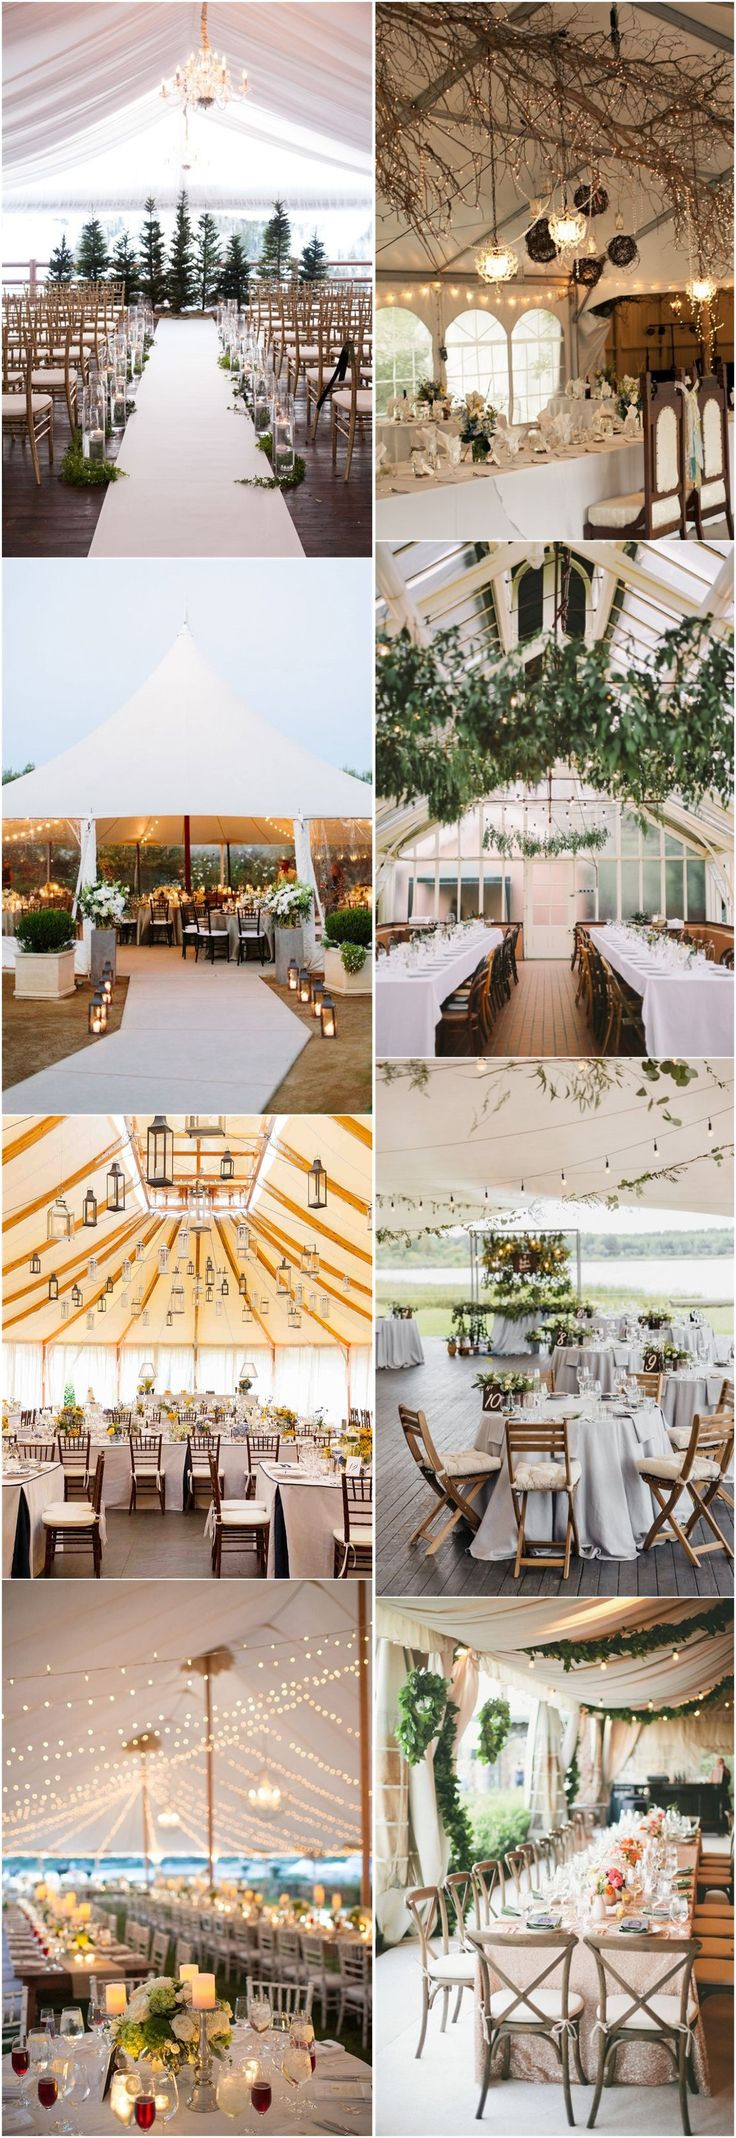 outdoor wedding venues dfw texas%0A    Outdoor Wedding Tent Decoration Ideas Every Bride Will Love